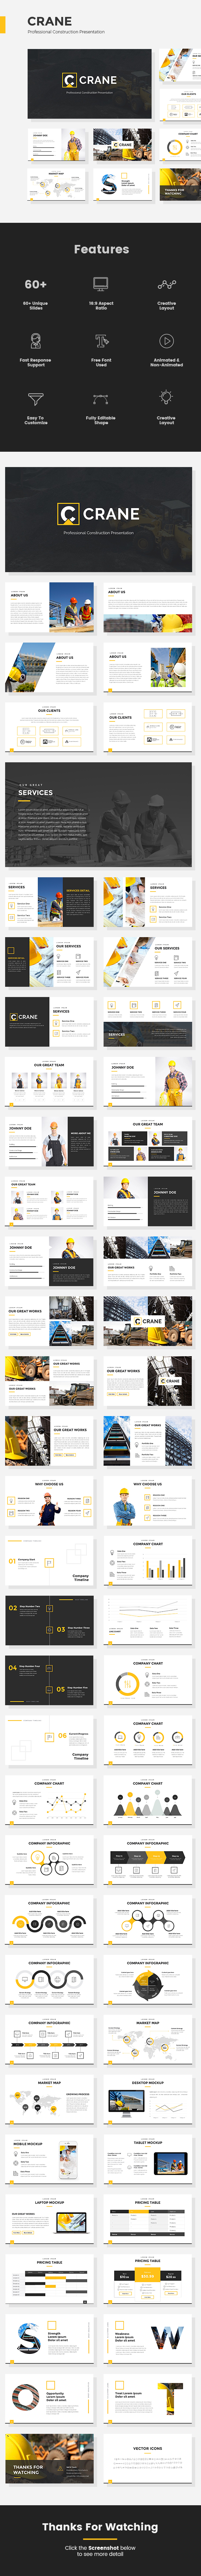 Crane - Professional Construction Keynote Presentation - Business Keynote Templates